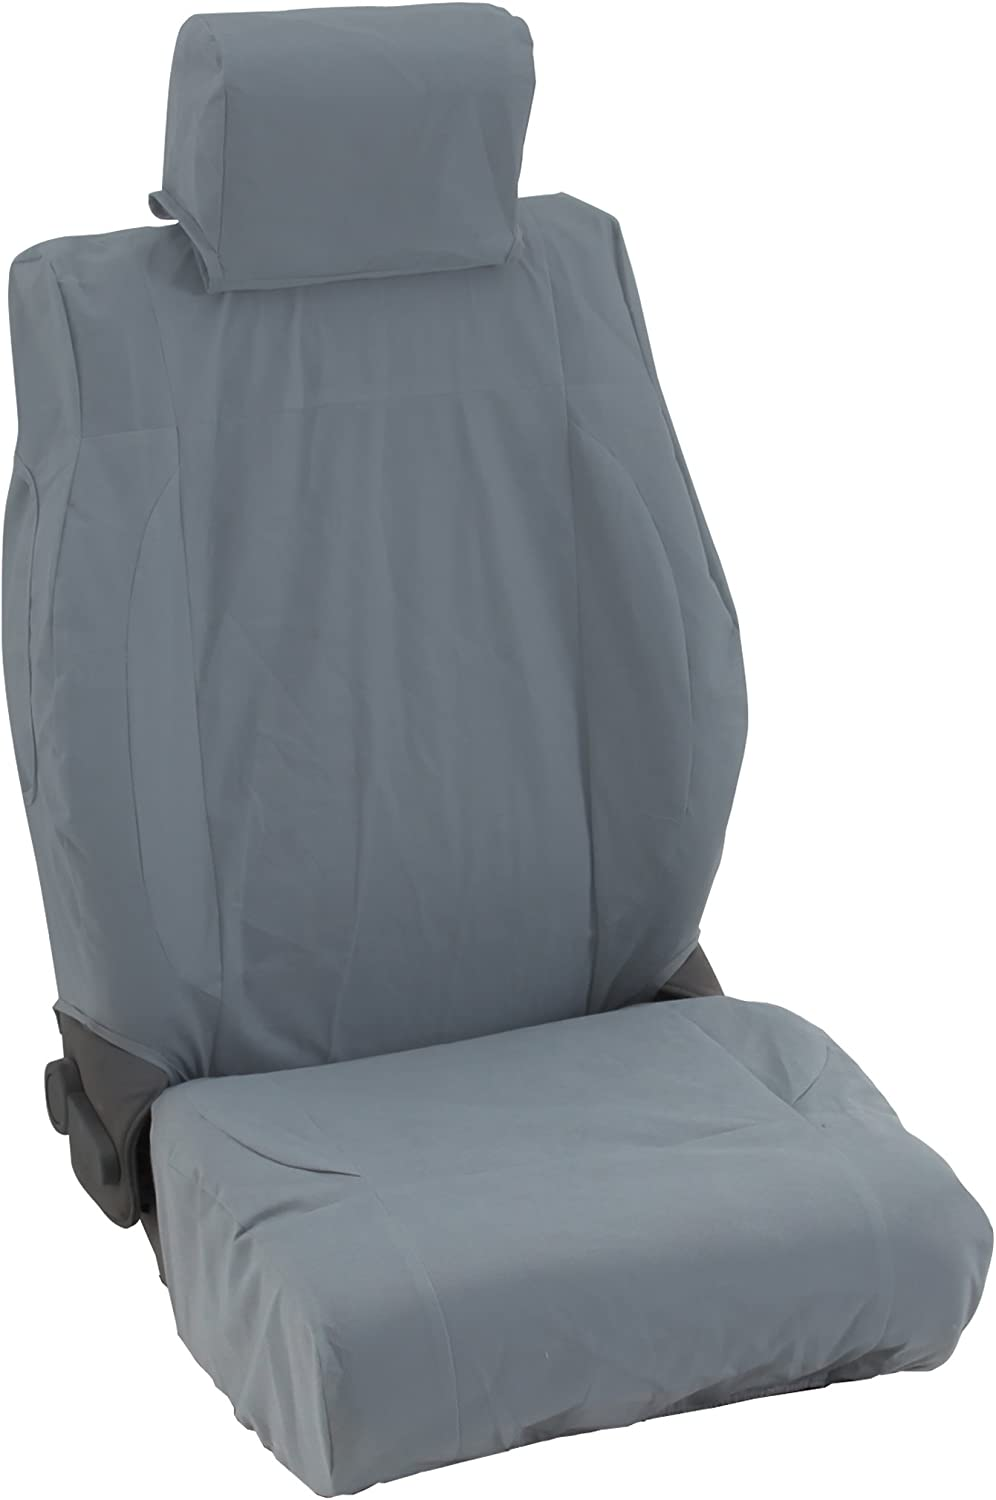 Smittybilt 2752 Rear Disposable Seat Cover for Jeep TJ